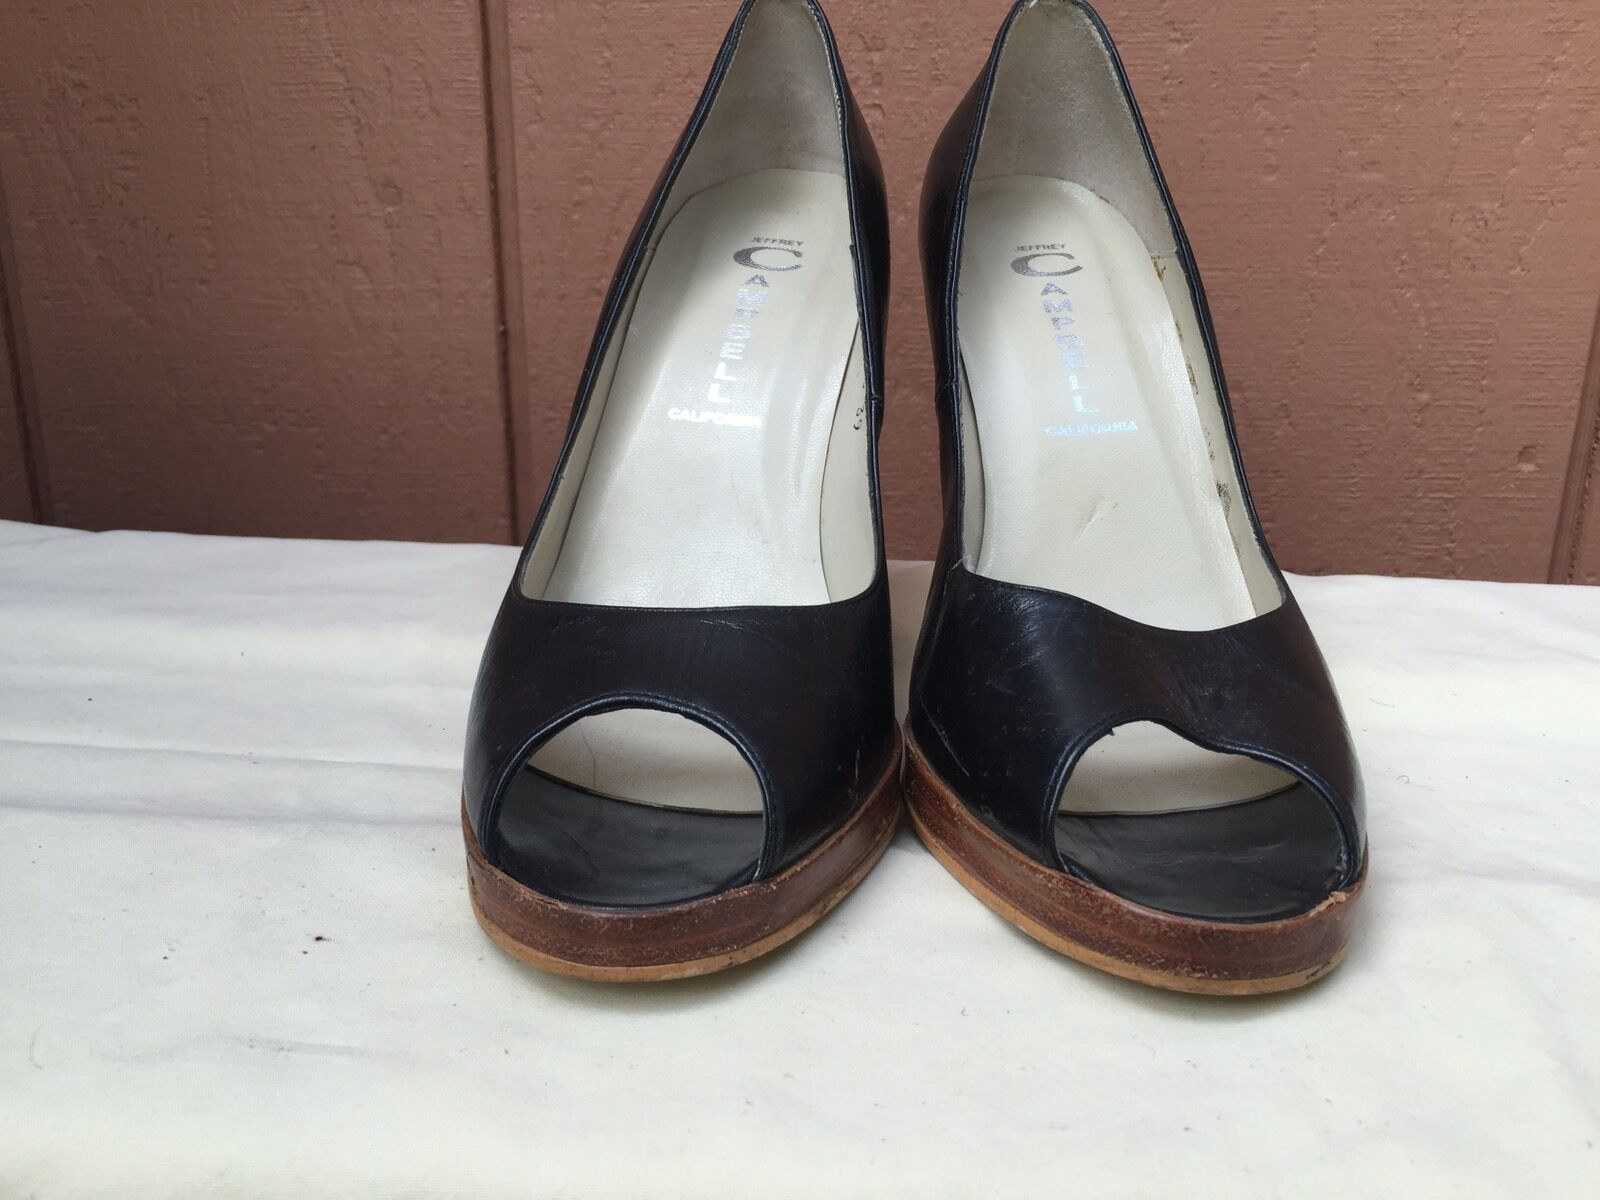 EUC PUMPS JEFFREY CAMPBELL schwarz LEATHER OPEN TOE CLASSIC PUMPS EUC US SZ 9 3f3be9